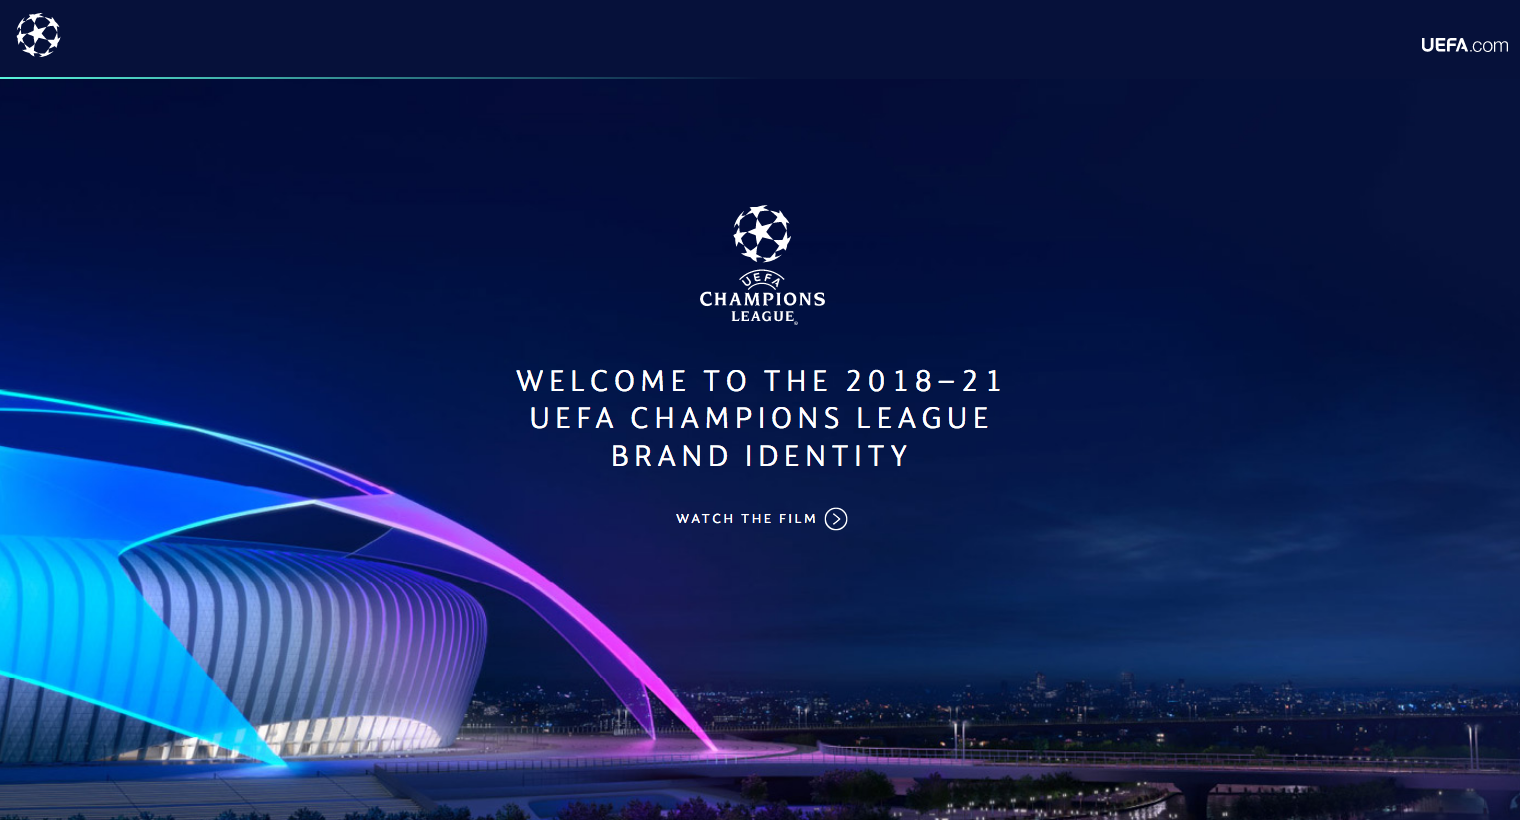 UEFA Champions League 2018-21 work 1